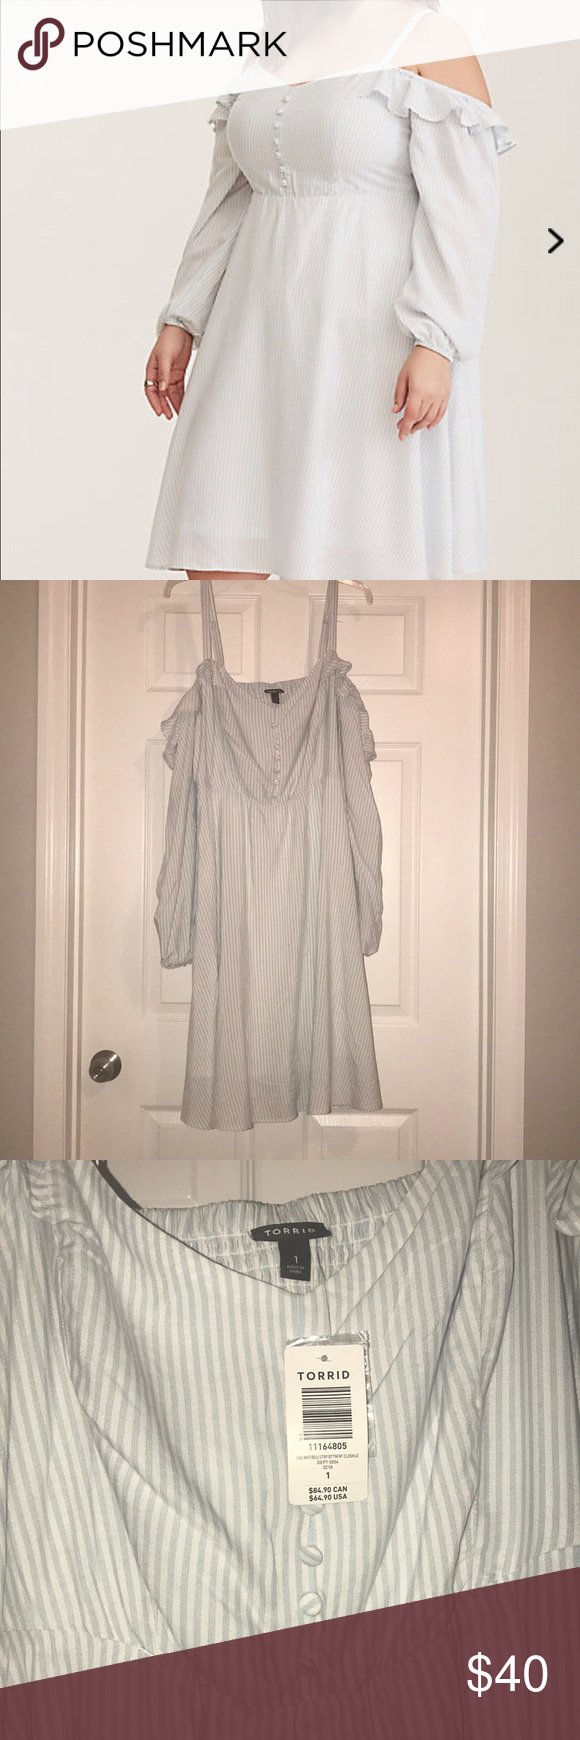 a6f70958f4b Torrid cold shoulder dress Blue White Striped Cold Shoulder Challis Dress  Torrid size 1 Perfect for spring! You can totally wear this with wedges